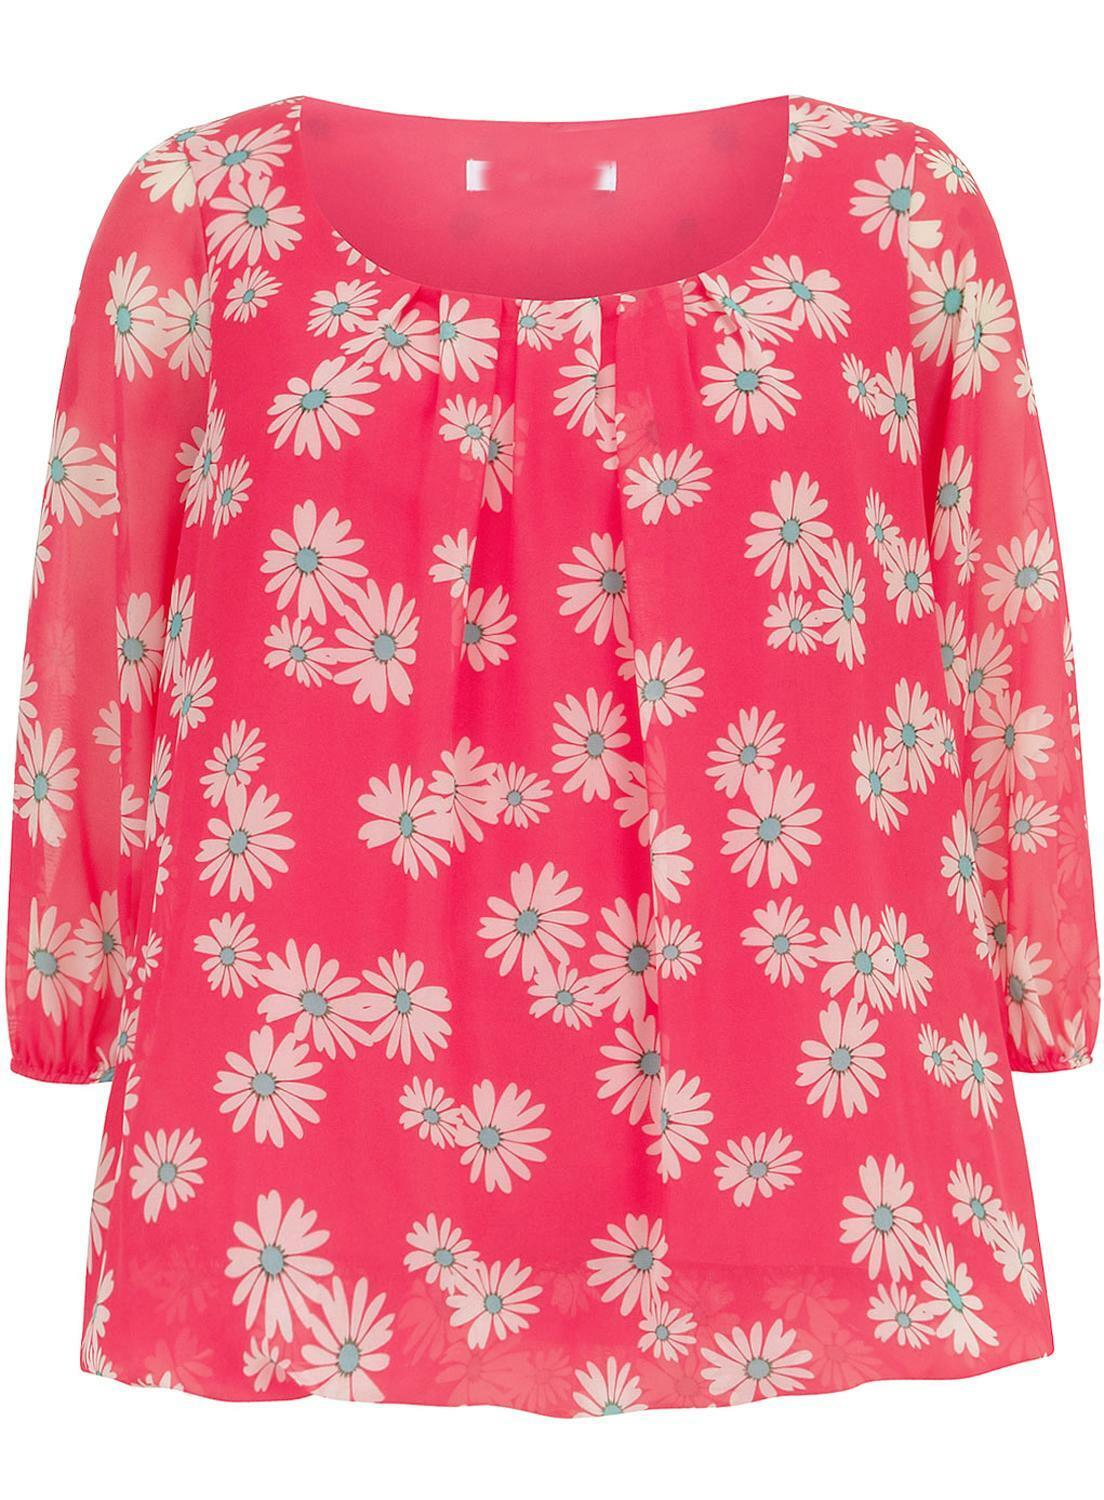 EVANS New Plus Size Pink Ivory Floral Flower Chiffon Top Blouse Size 16-22